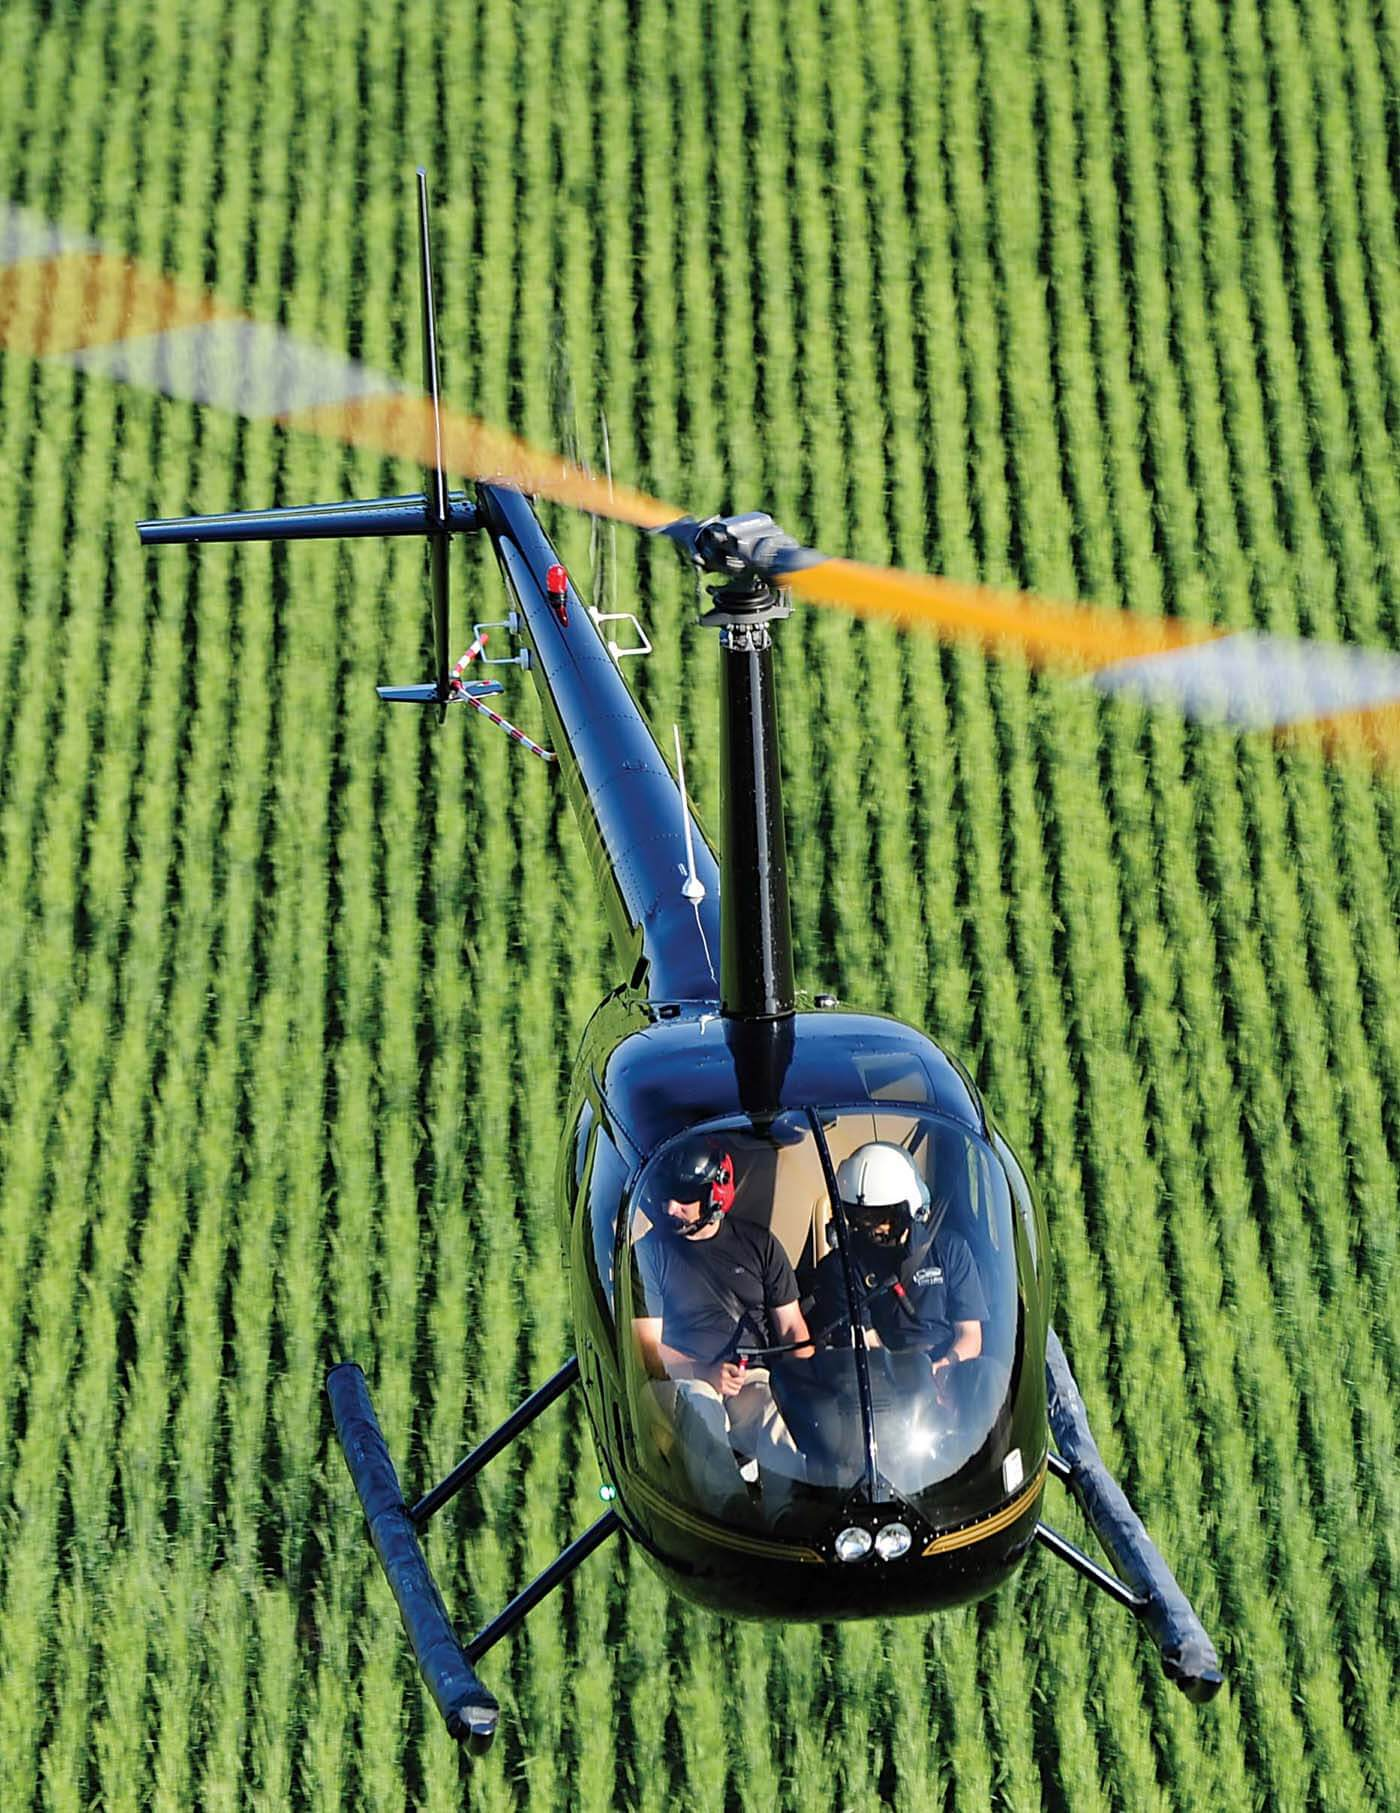 Robinson R22, R44, and R66 helicopters have accumulated over 30 million flight hours